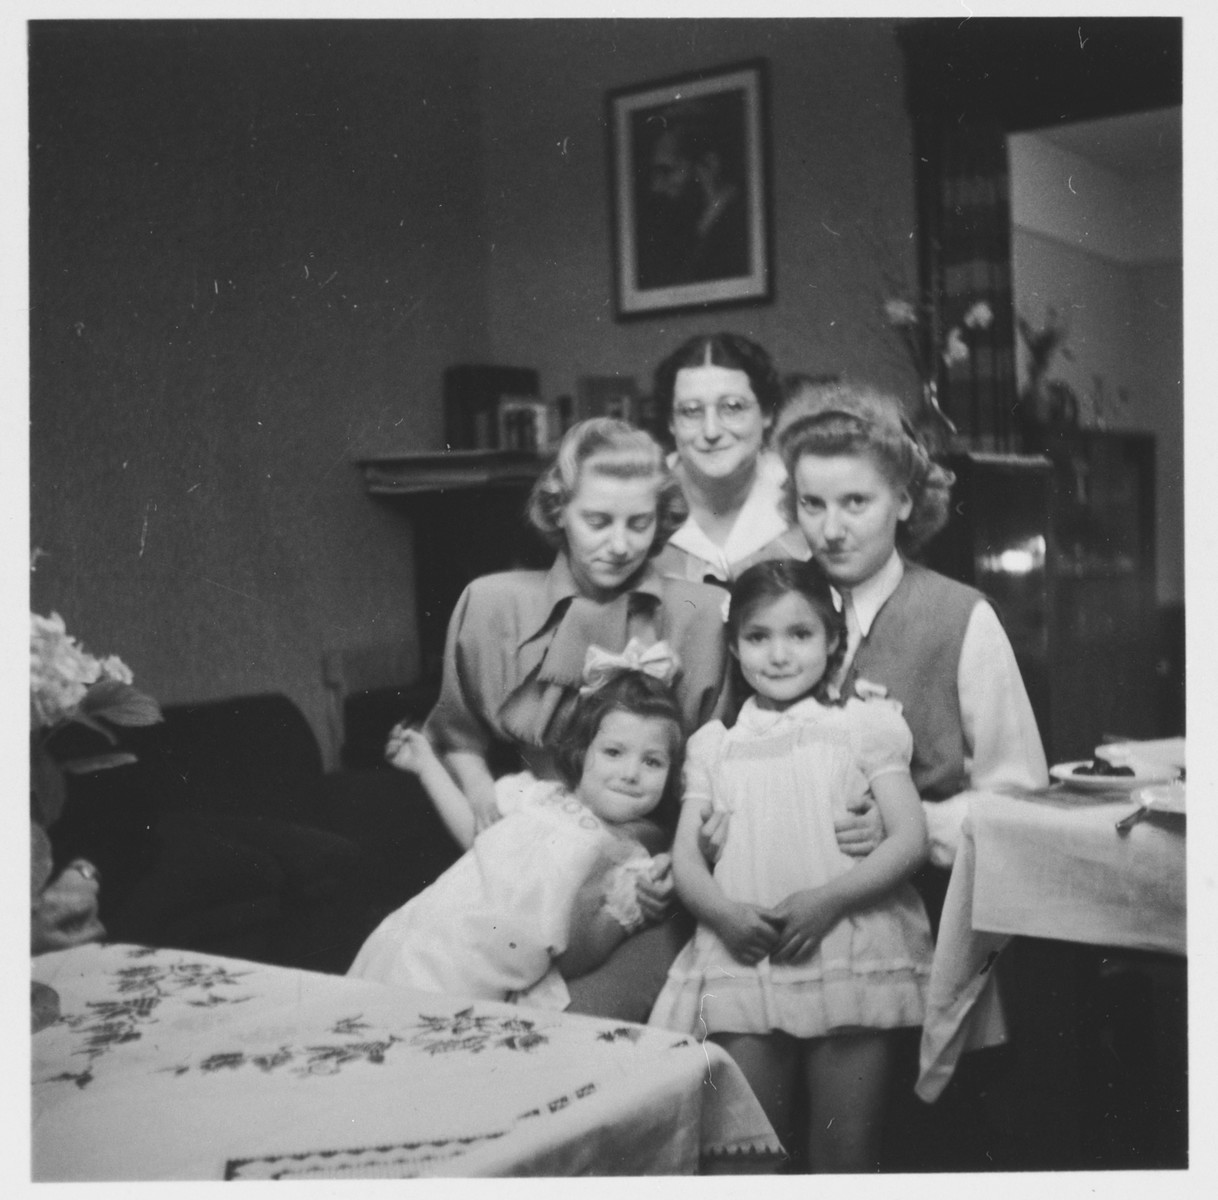 Group portrait of members of the Wollheim and Fabian families at the Wollheim's home in Luebeck during the Passover holiday.  Pictured clockwise from the top are: Ruth Wollheim, Ruth Hannah (Blumenthal) Fabian, Judis Fabian, Reha Fabian and Friedel Wollheim.